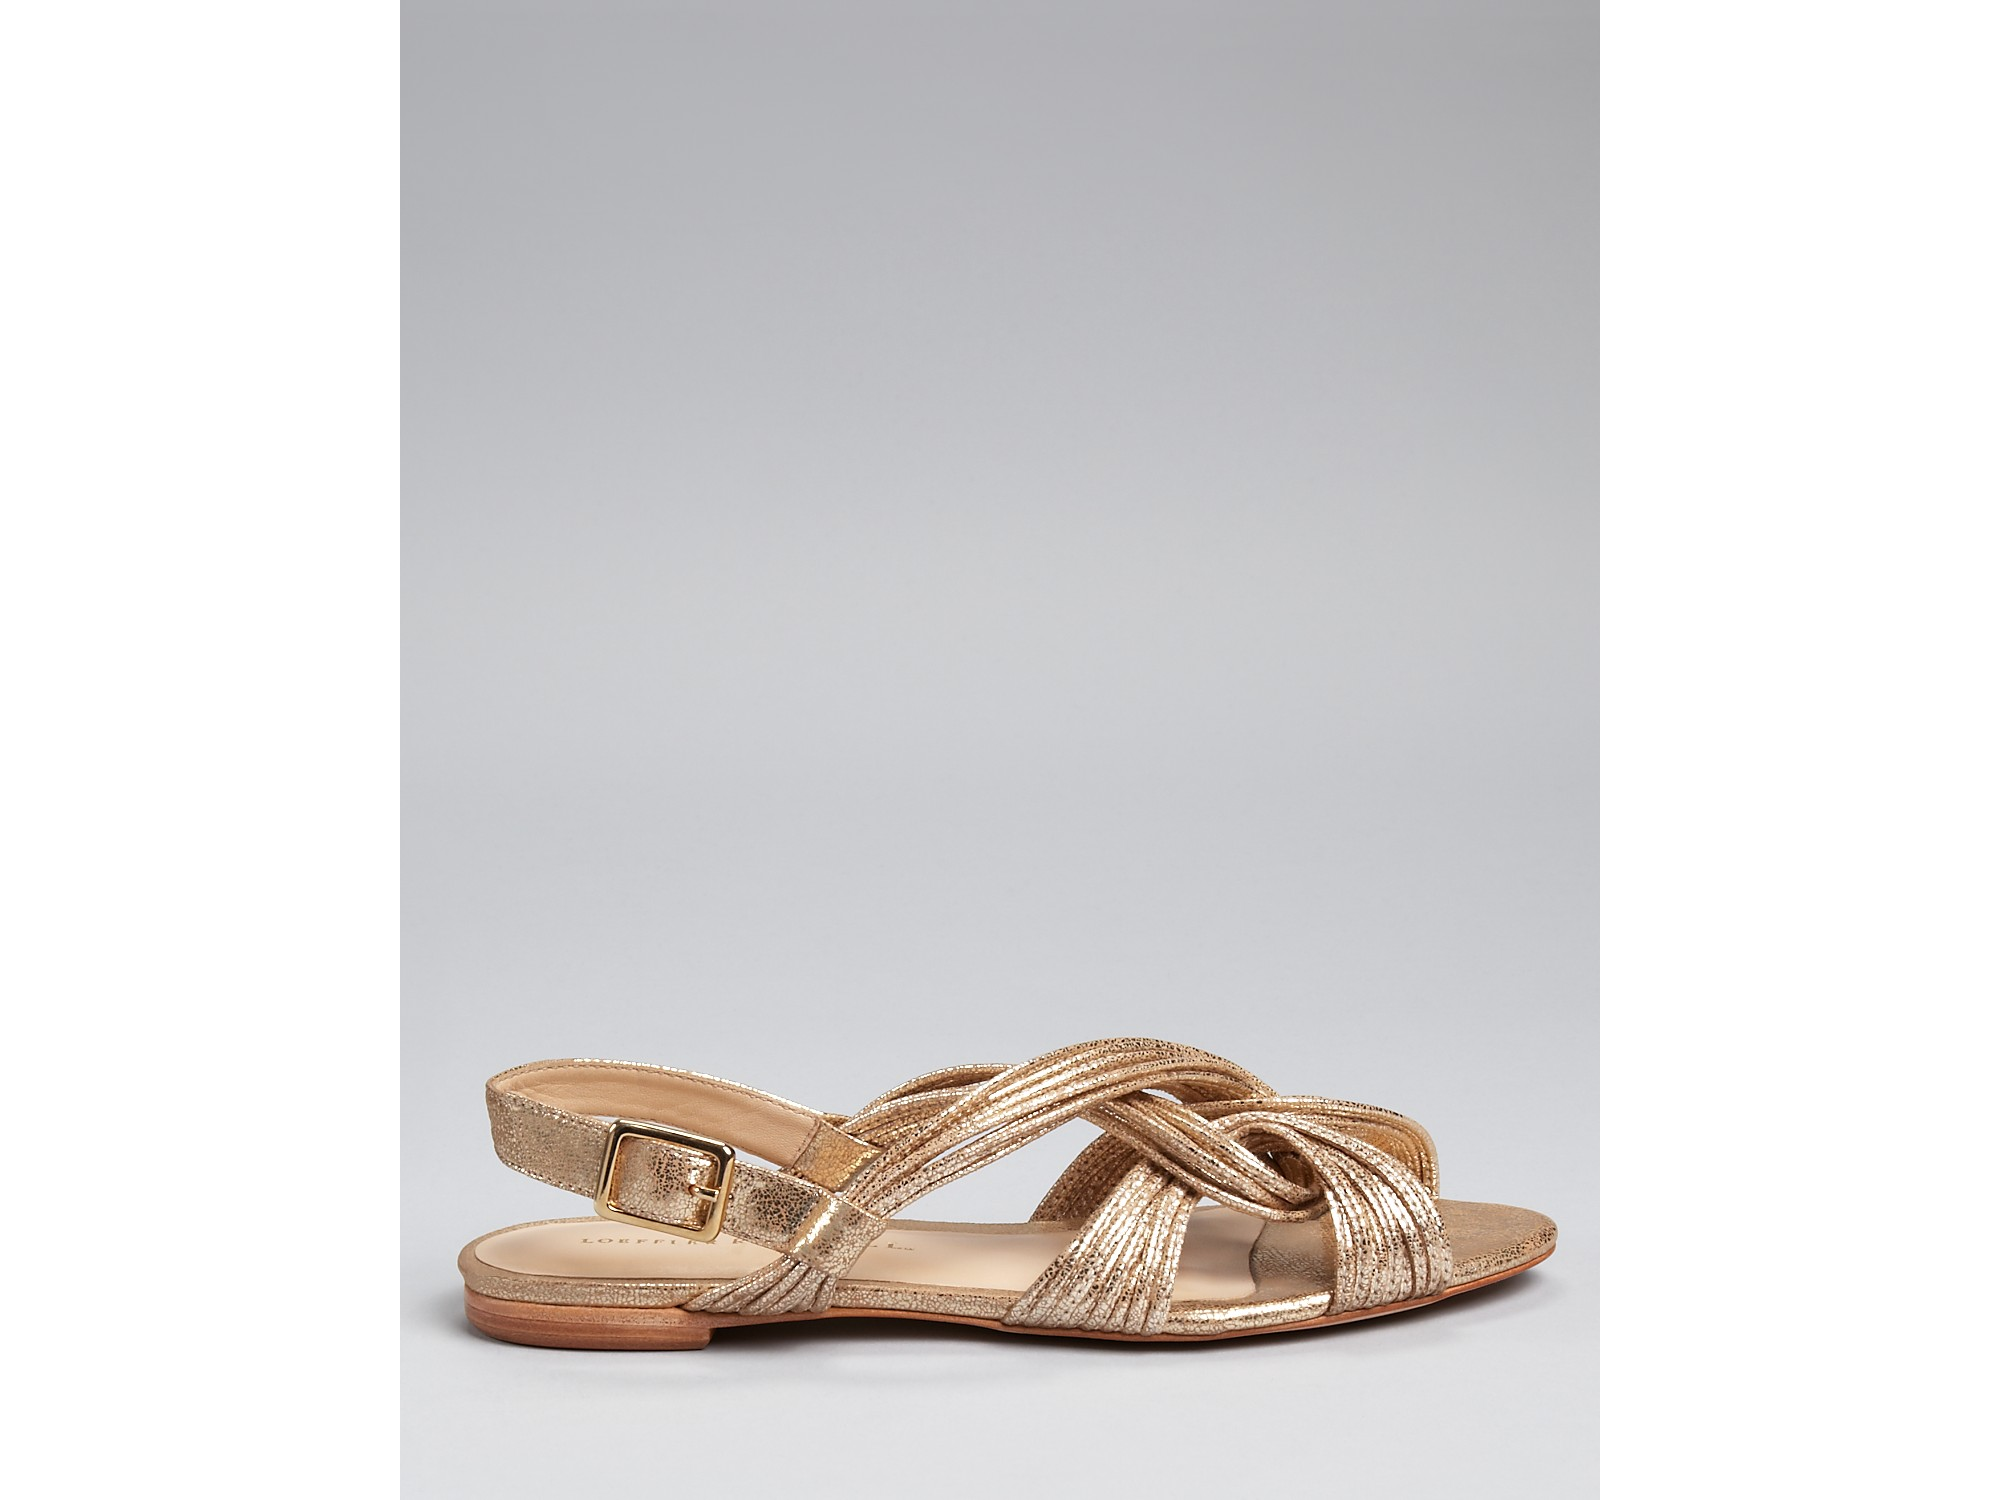 Loeffler Randall Metallic Filippa Sandals